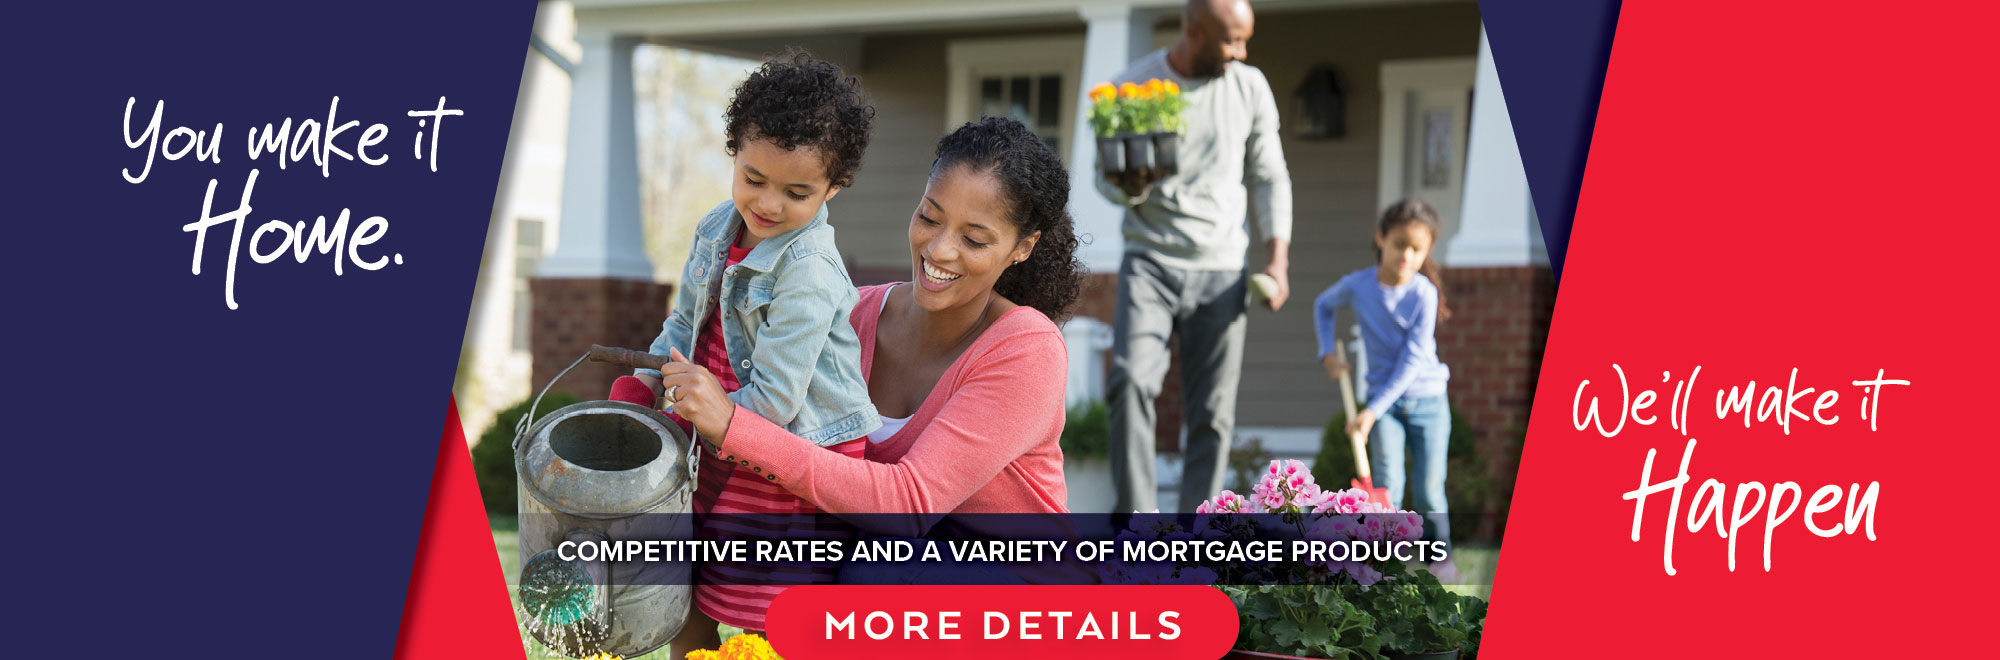 You make it home. We'll make it happen with competitive rates and a variety of mortgage products.